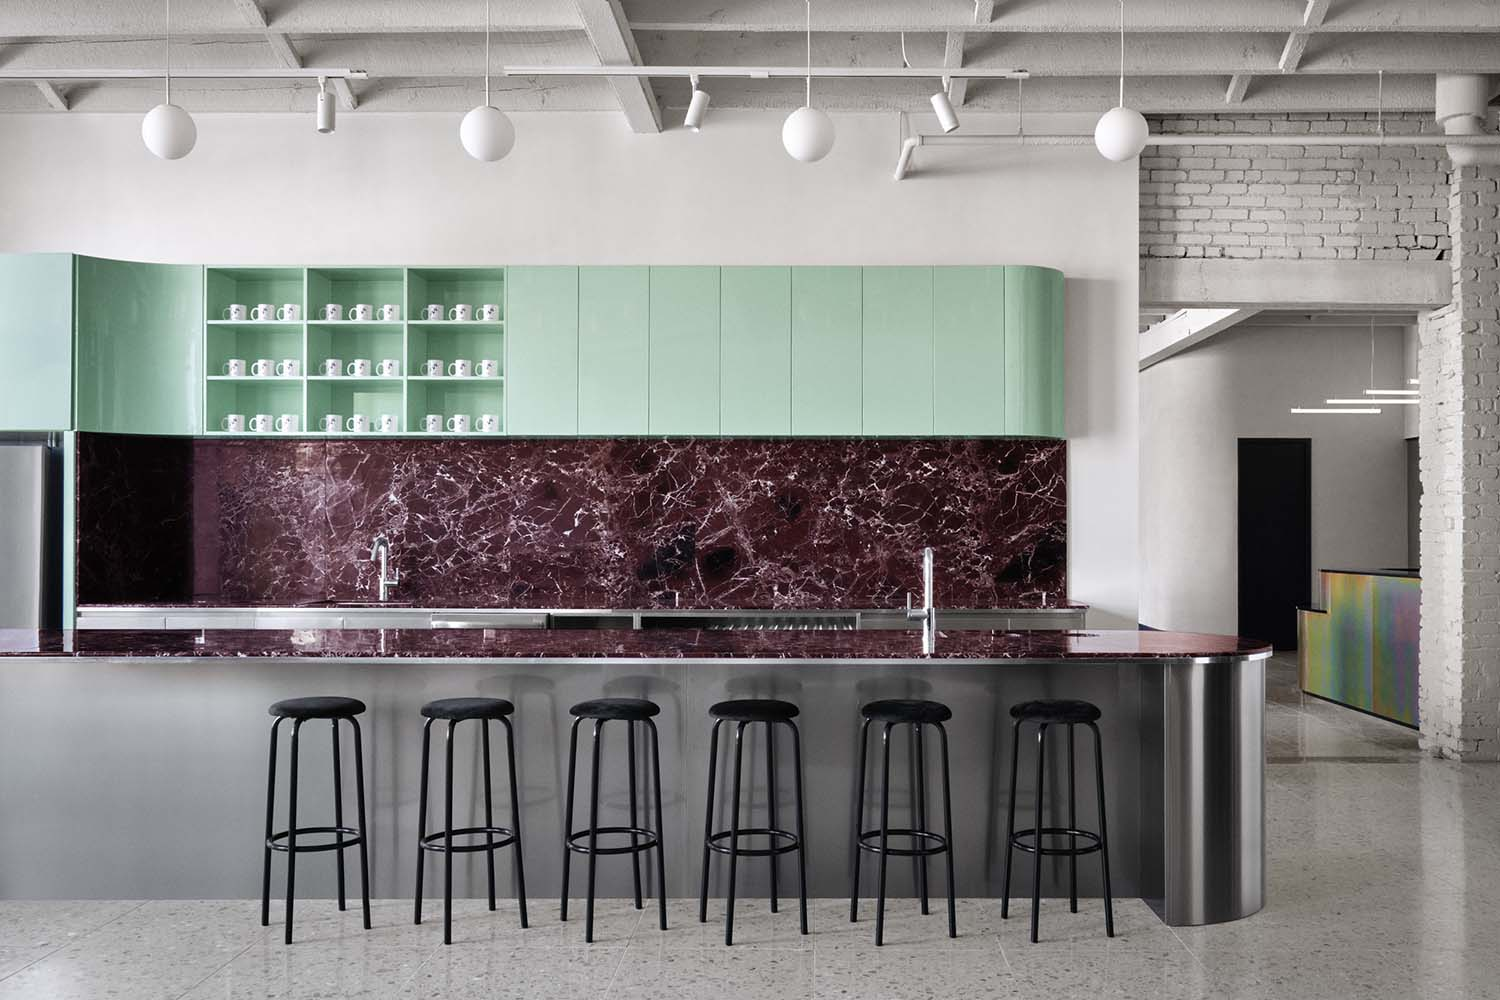 Spacial Offices Montreal Co-Working Space Designed by IVY Studio